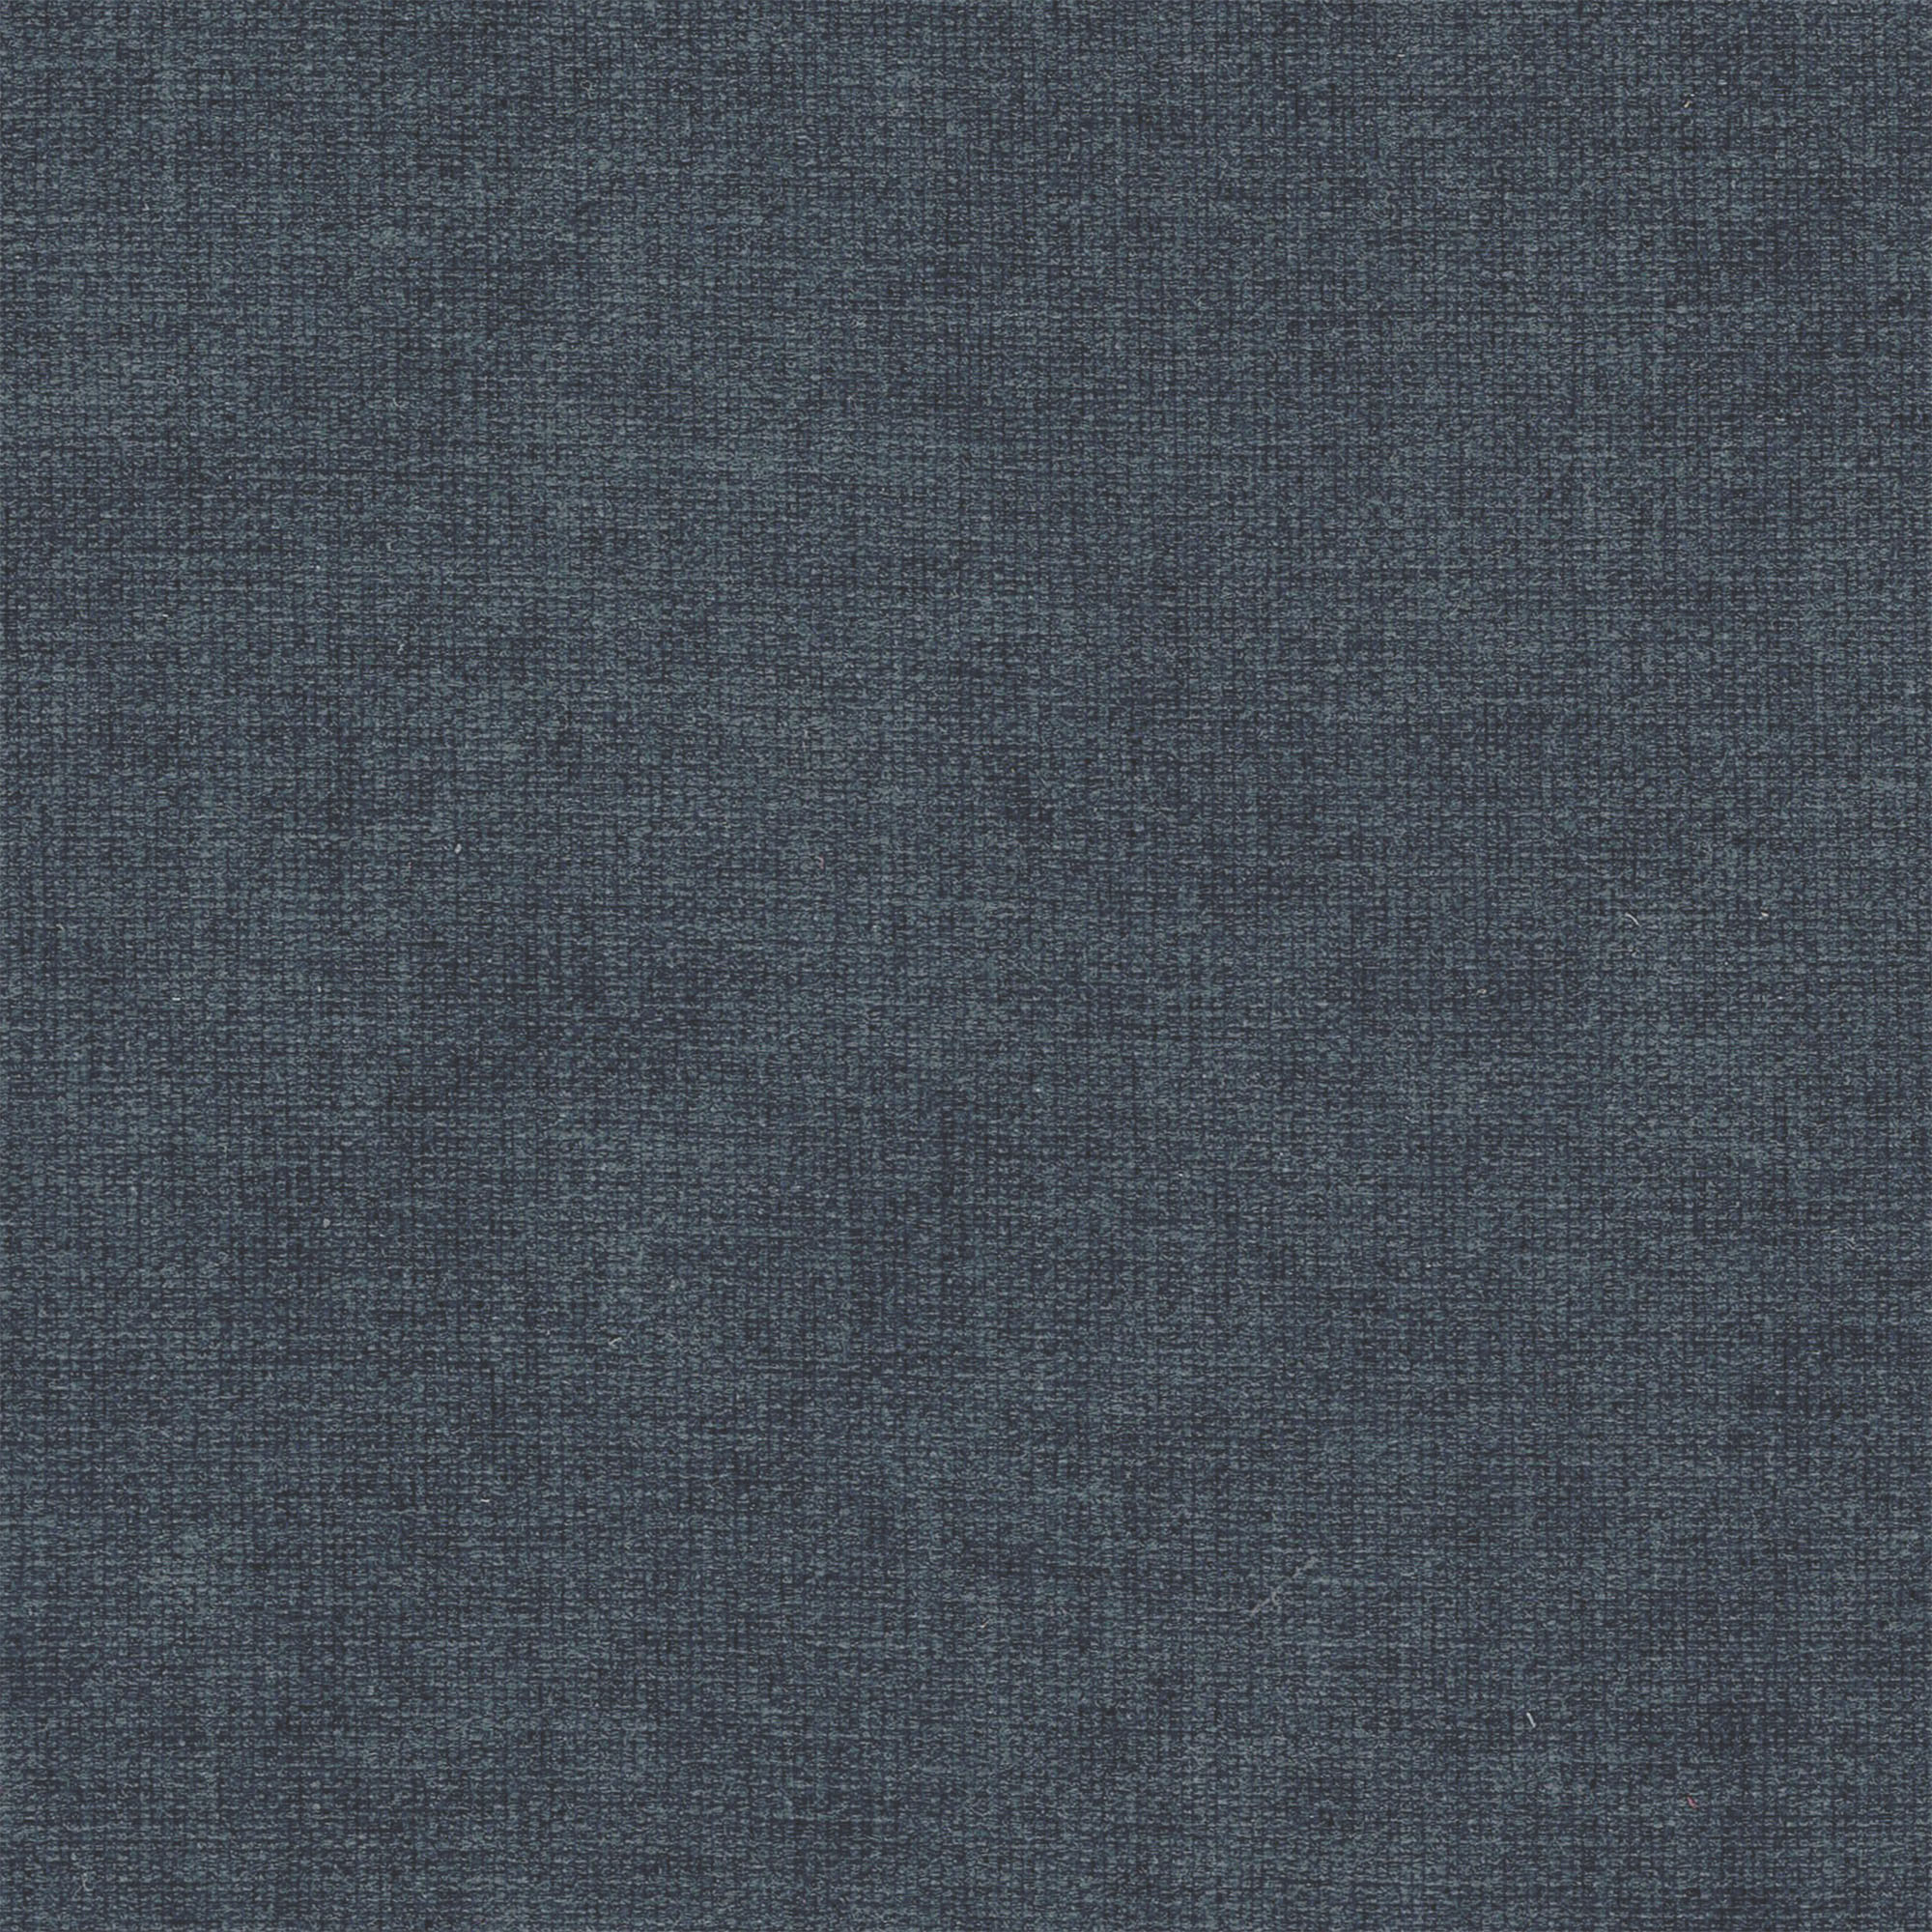 "Cotton Blend Greystone Fabric Swatch 6"" X 6"""